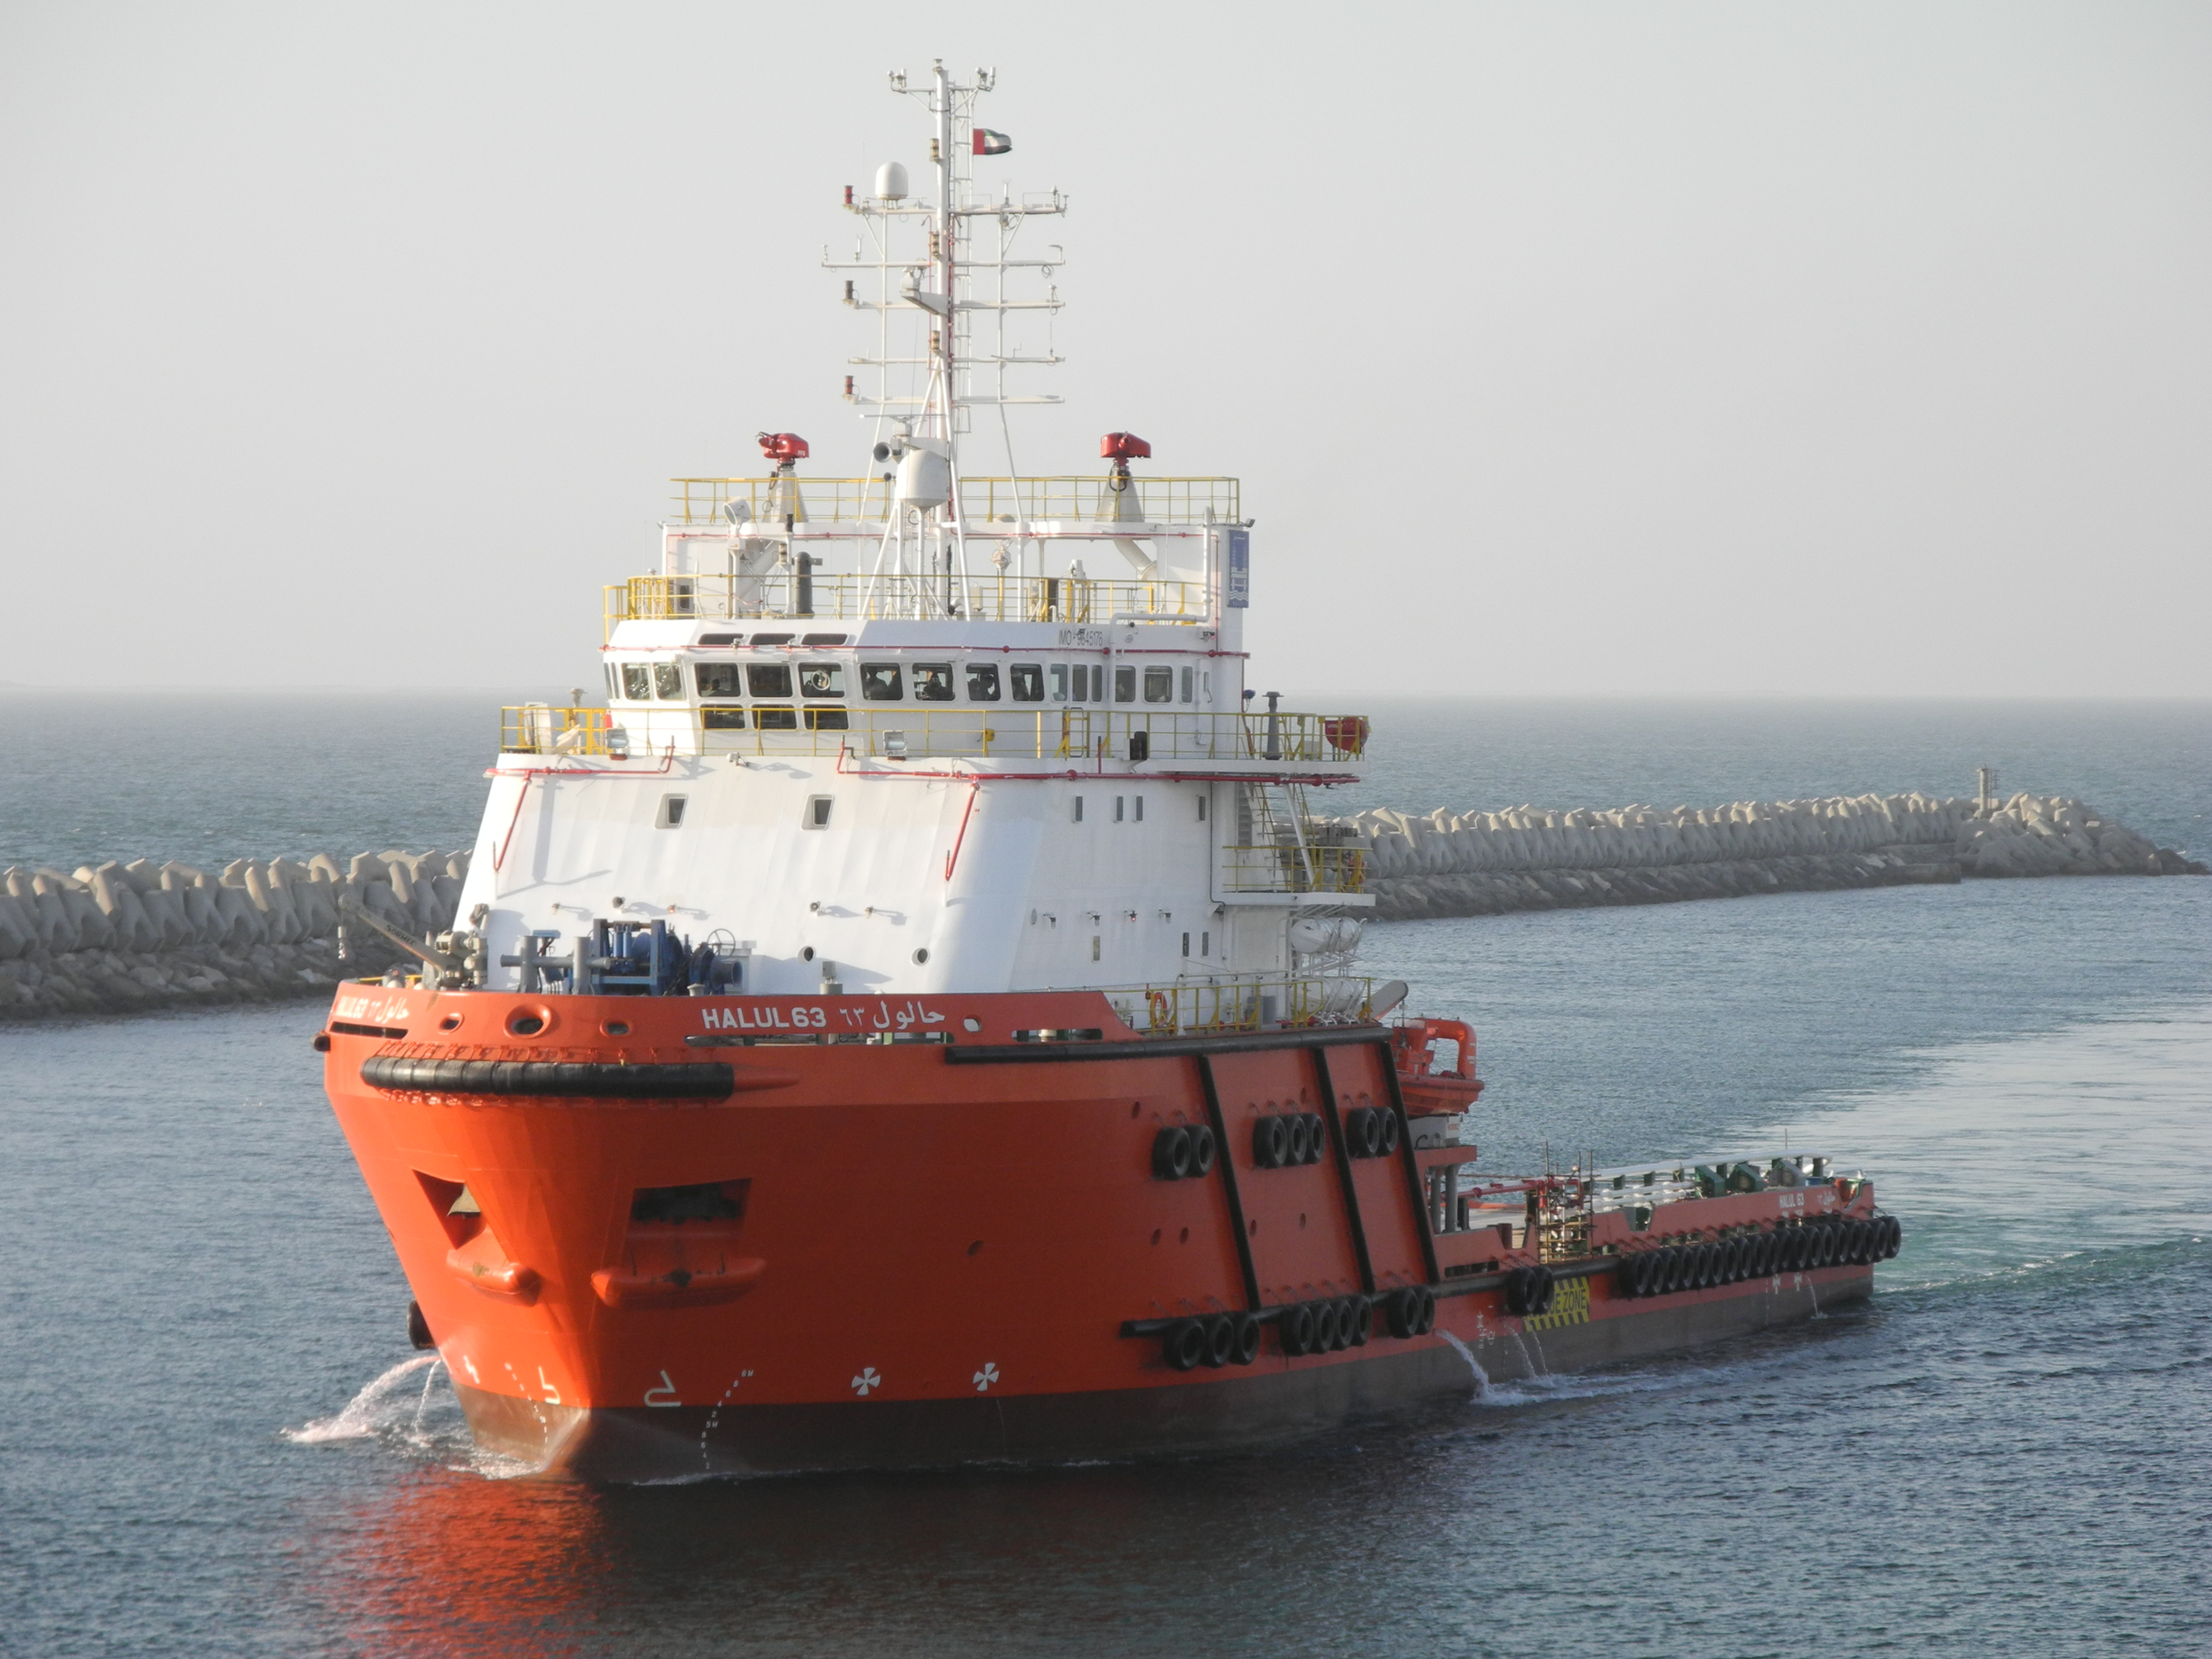 Supply vessels photo